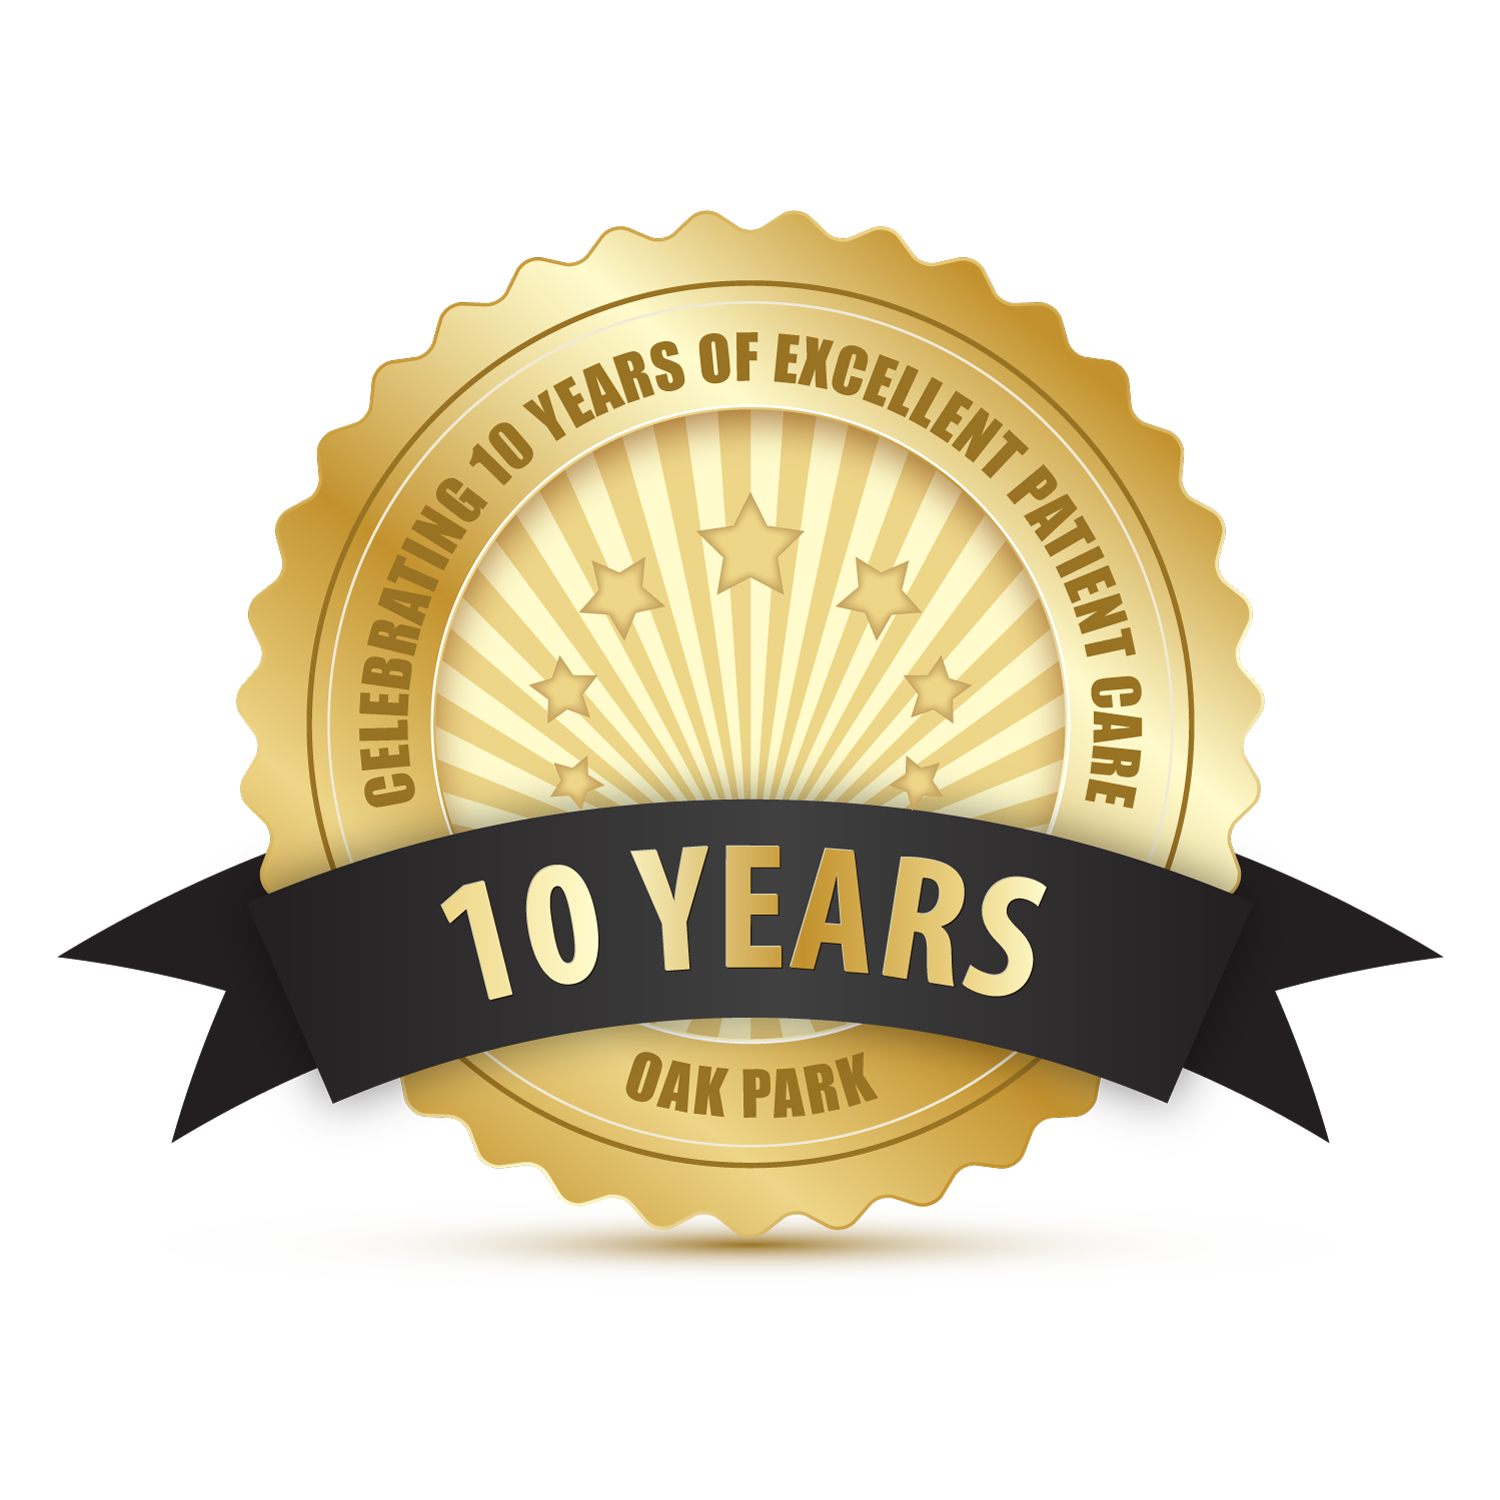 10-year-annivrsary-functional-health-and-wellness-oak-park-illinois.png